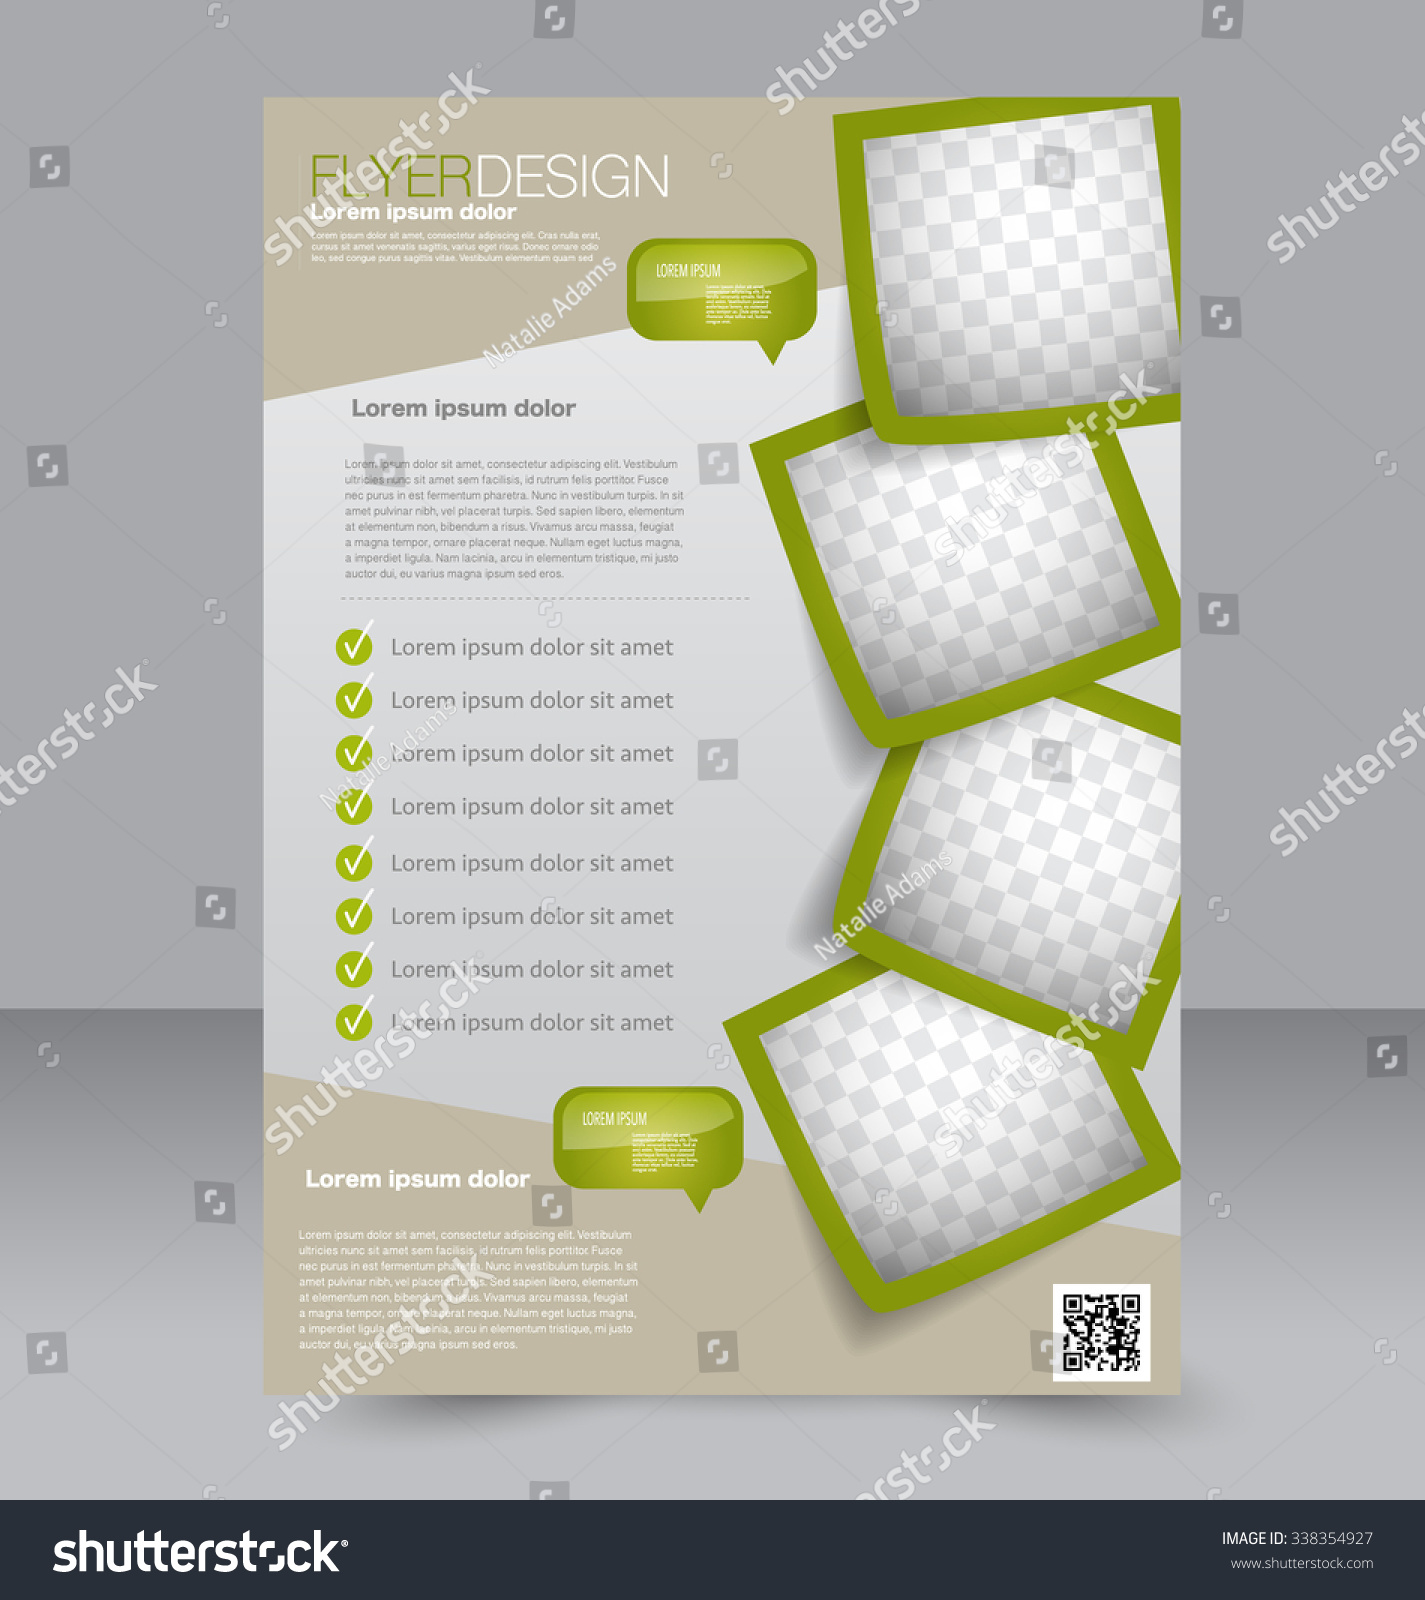 flyer template brochure design editable a stock vector  flyer template brochure design editable a4 poster for business education presentation